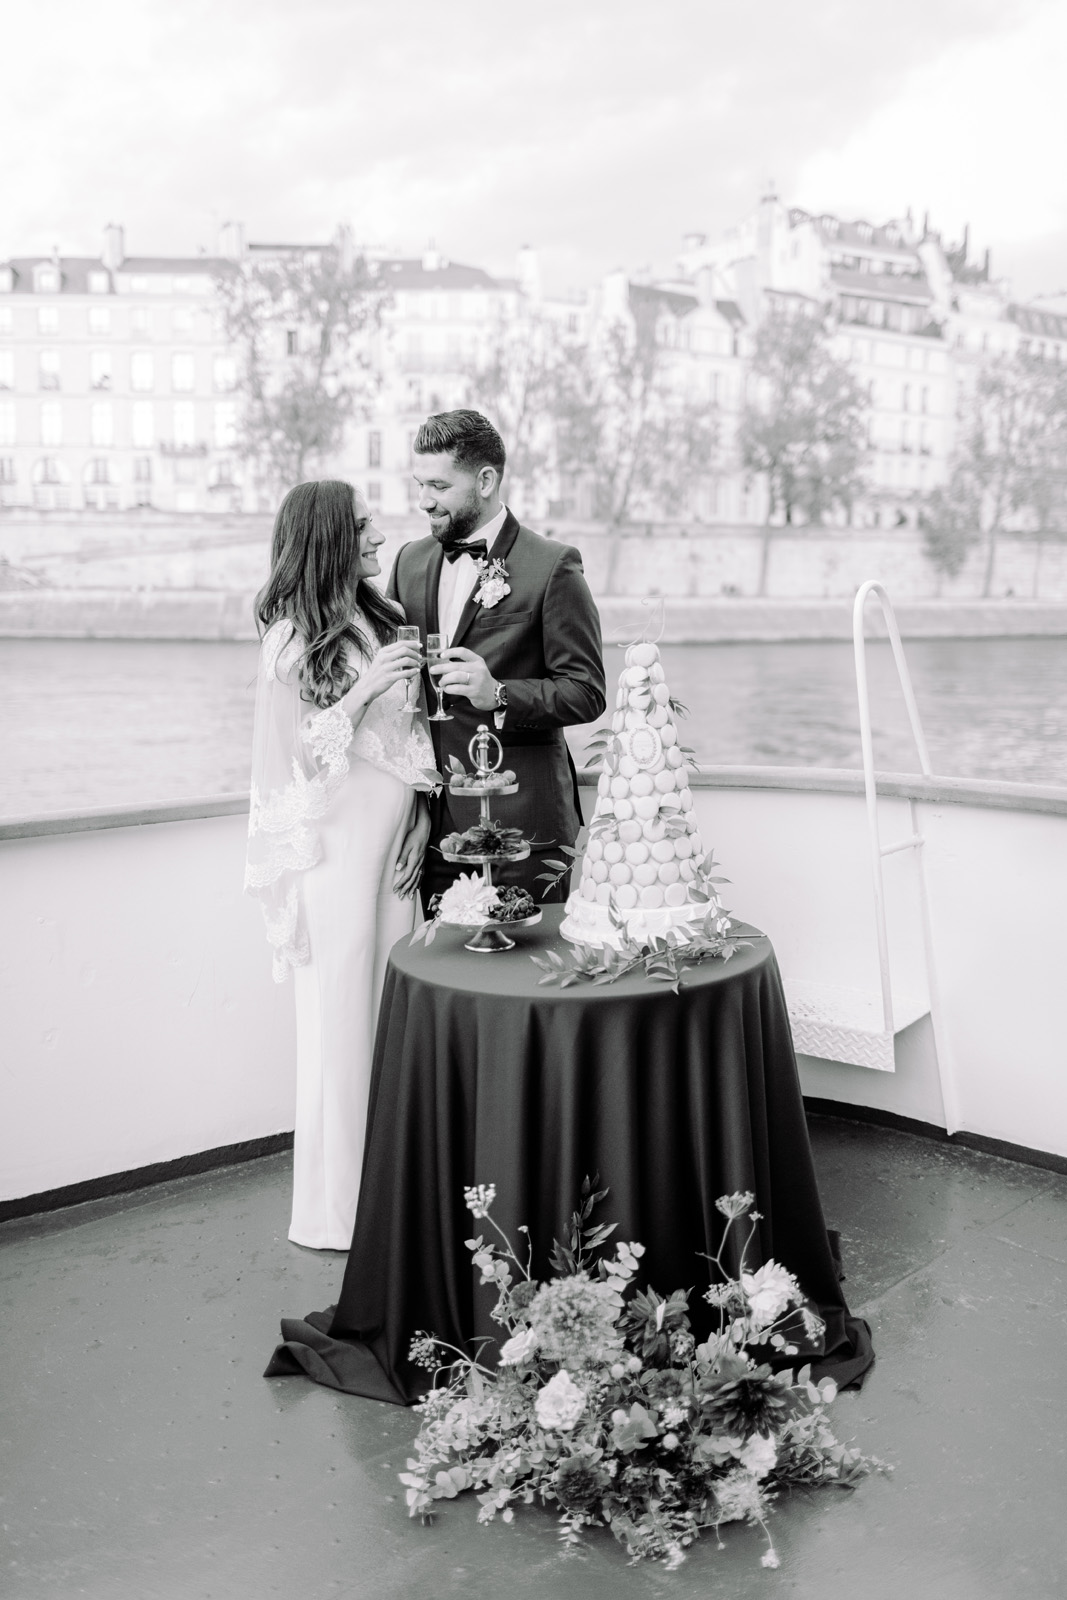 Paris wedding photographer captures couple cutting cake on a private boat on river Seine